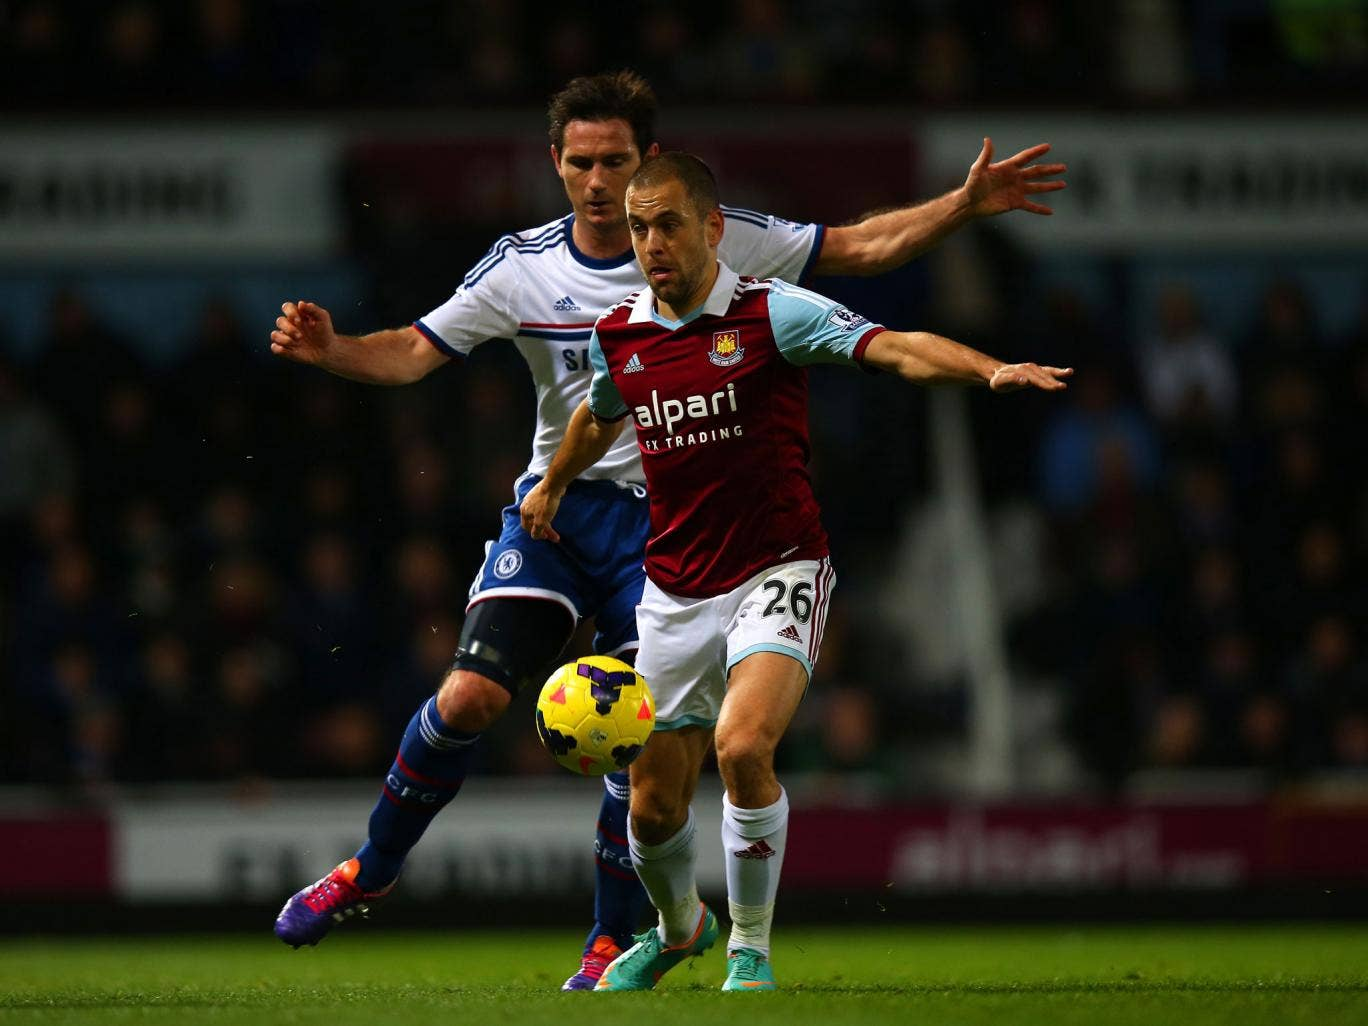 West Ham midfielder Joe Cole could force through a January move away form the club after his early substitution in the defeat to Chelsea